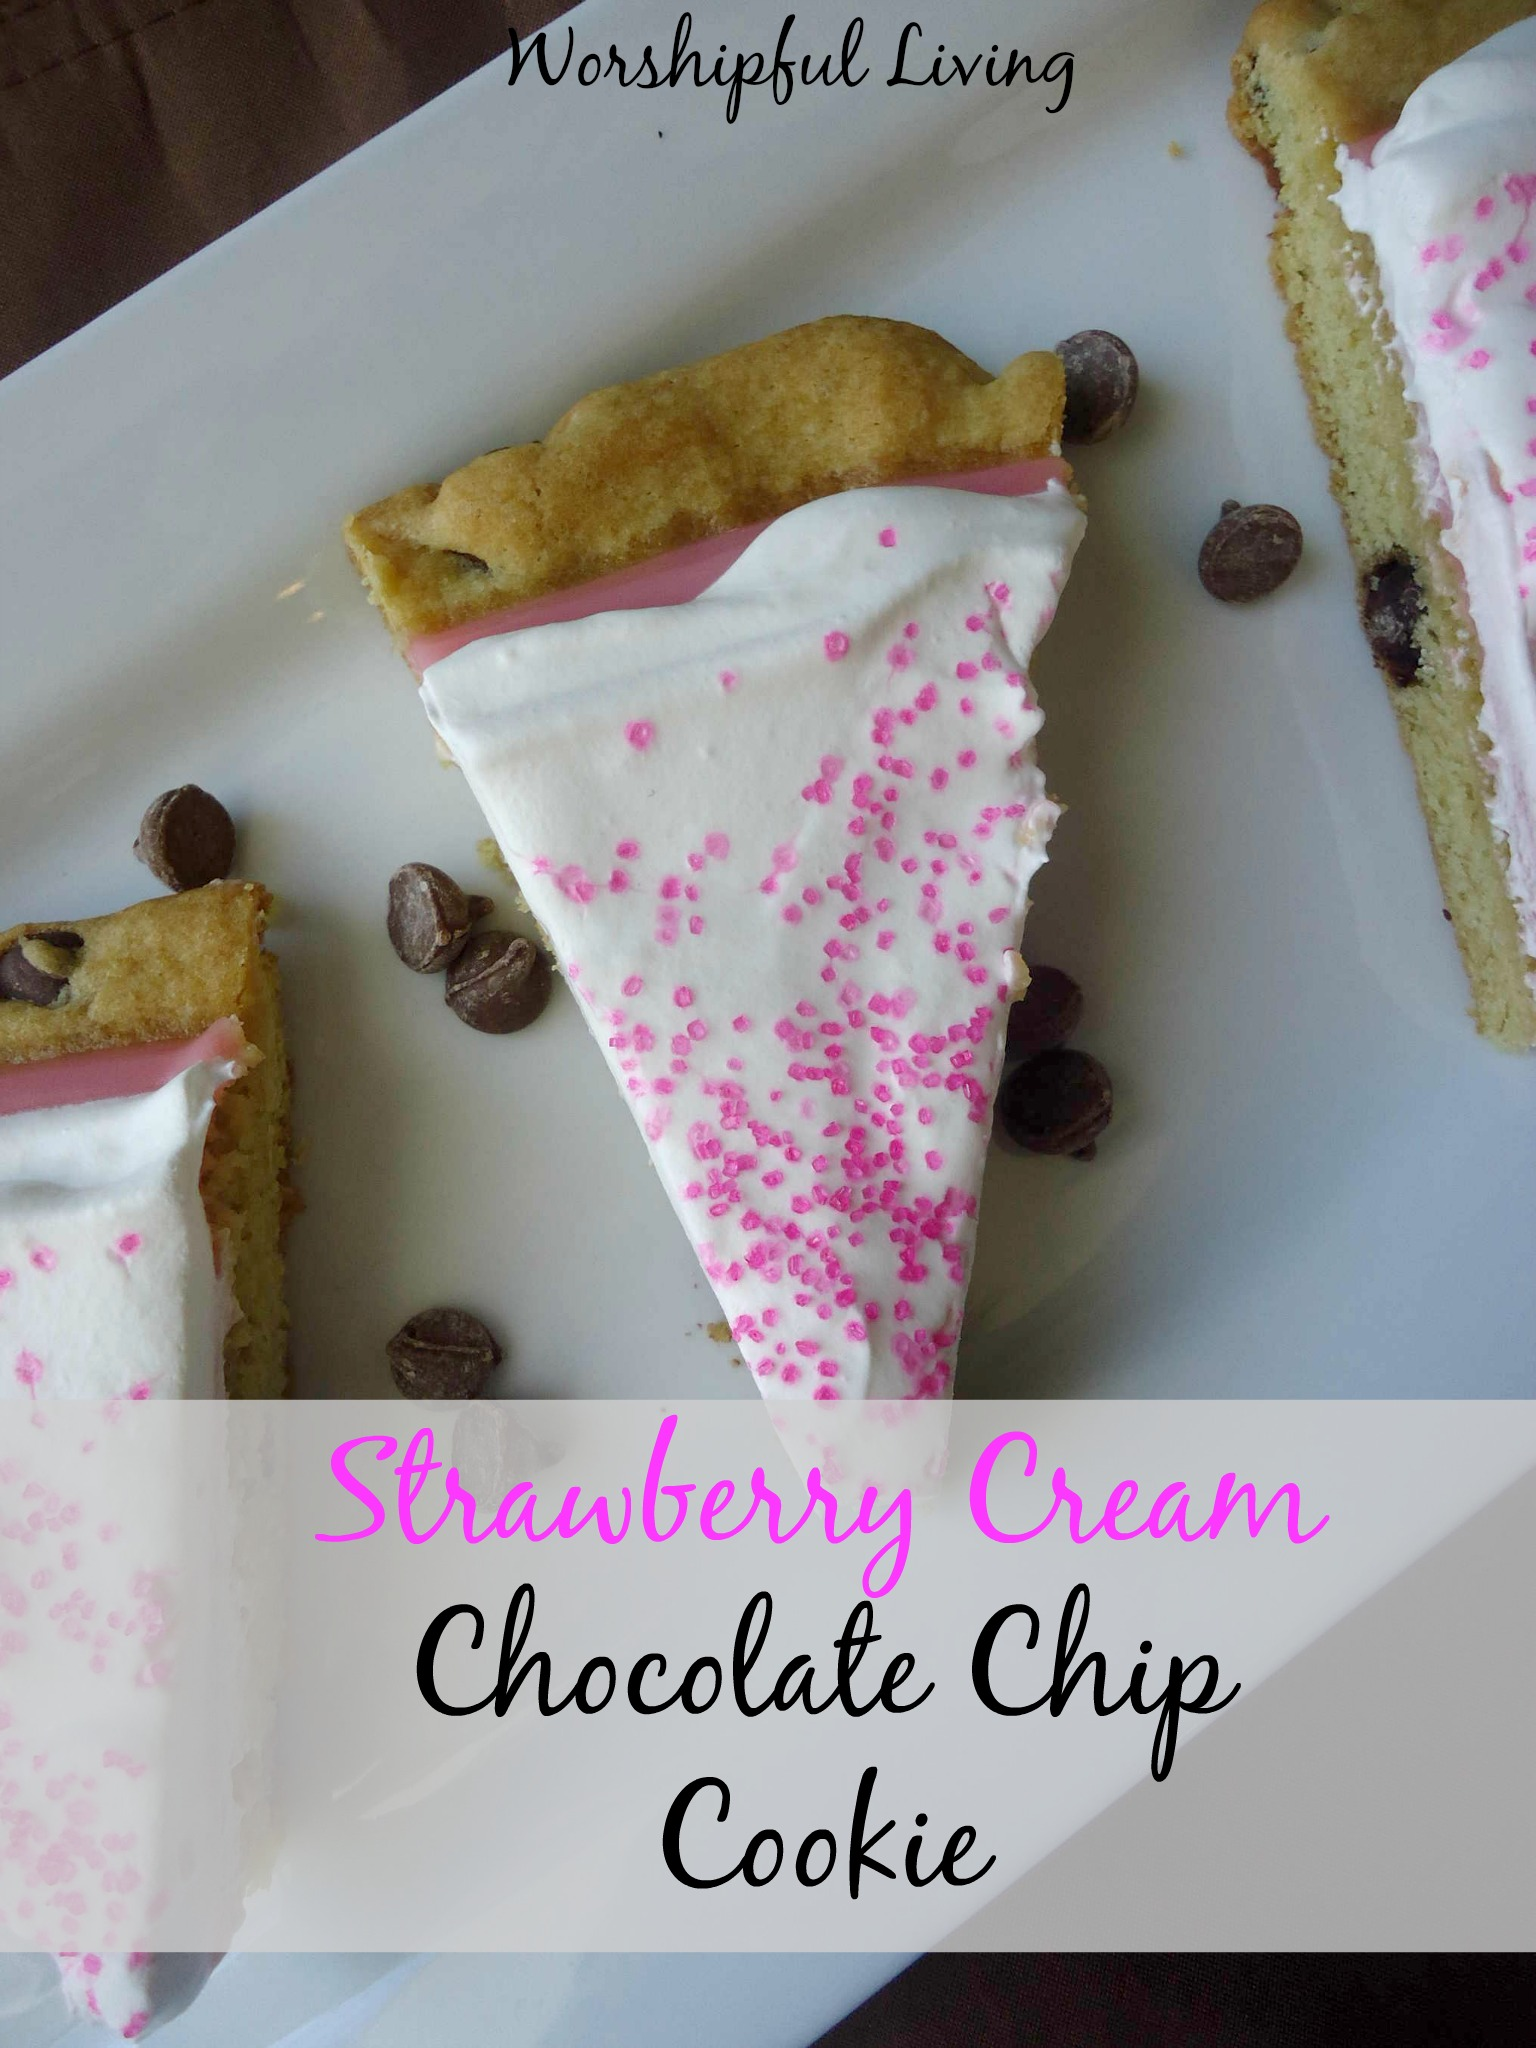 This cookie is is soft and when paired with the strawberry cream ...